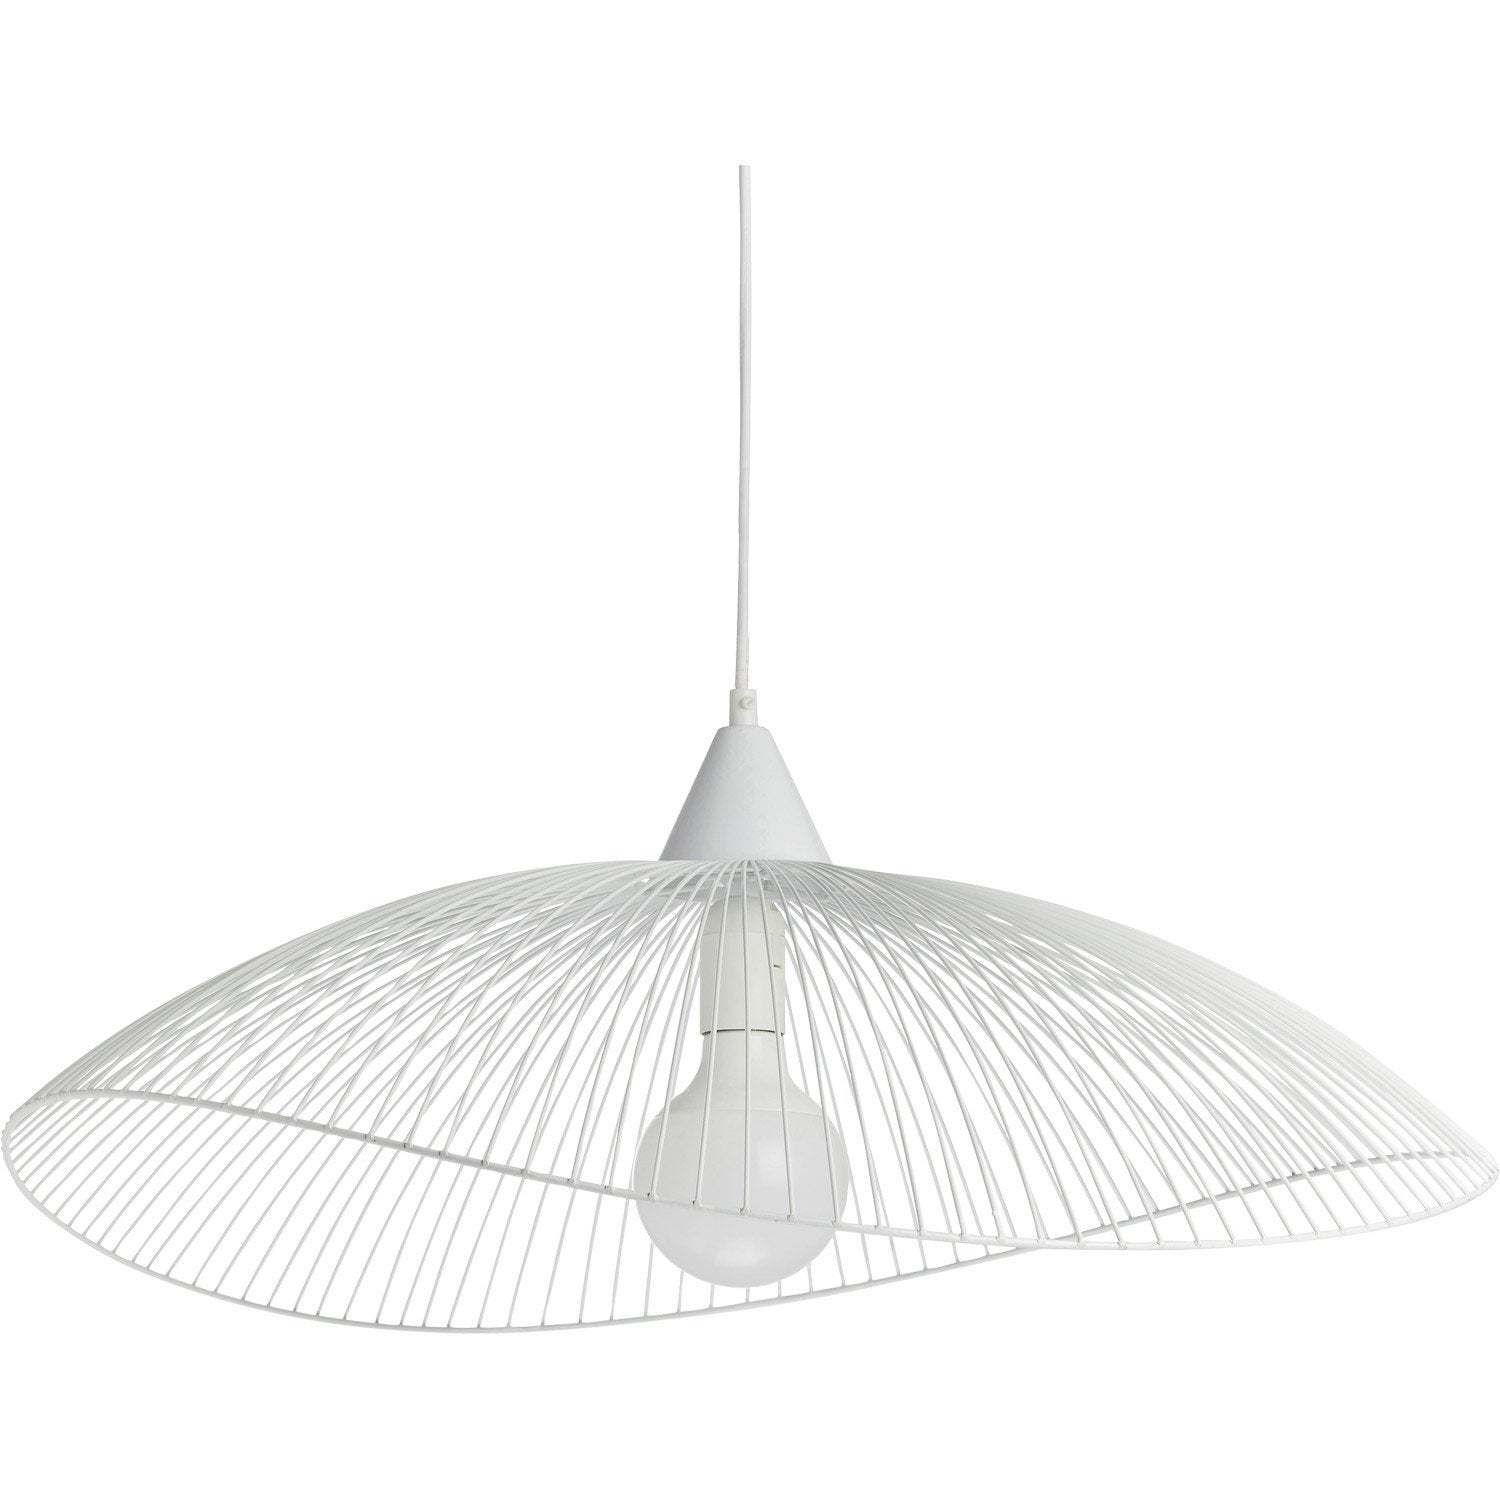 suspension e27 scandinave kasteli metal blanc 1 x 40w seynave Résultat Supérieur 15 Frais Lustre Suspension Metal Photos 2017 Phe2